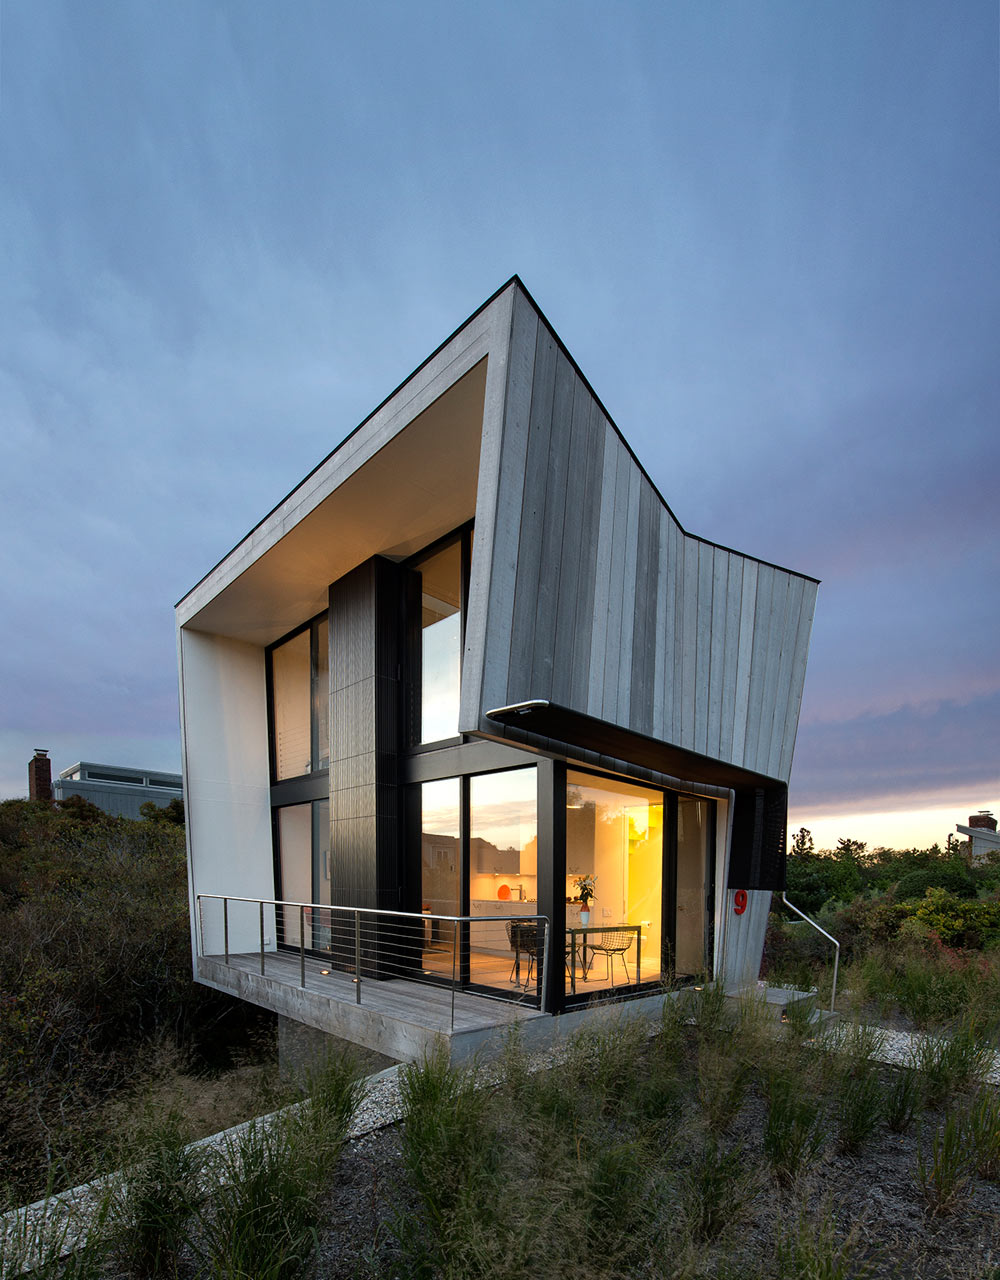 A Two-Story Beach House with a Small Footprint - Design Milk on cool beach lighting, cool beach architecture, cool real estate designs, lake house designs, cool exterior house designs, cool japanese house designs, cool beach fashion, cool spoon designs, cool ampersand designs, cool houses by the beach, cool beach bathroom, cool kokopelli designs, cool beach kitchens, cool college house designs, cool pink floyd designs, cool small house designs, cool tiny house designs, cool lightning bolt designs, cool air designs, cool wood house designs,